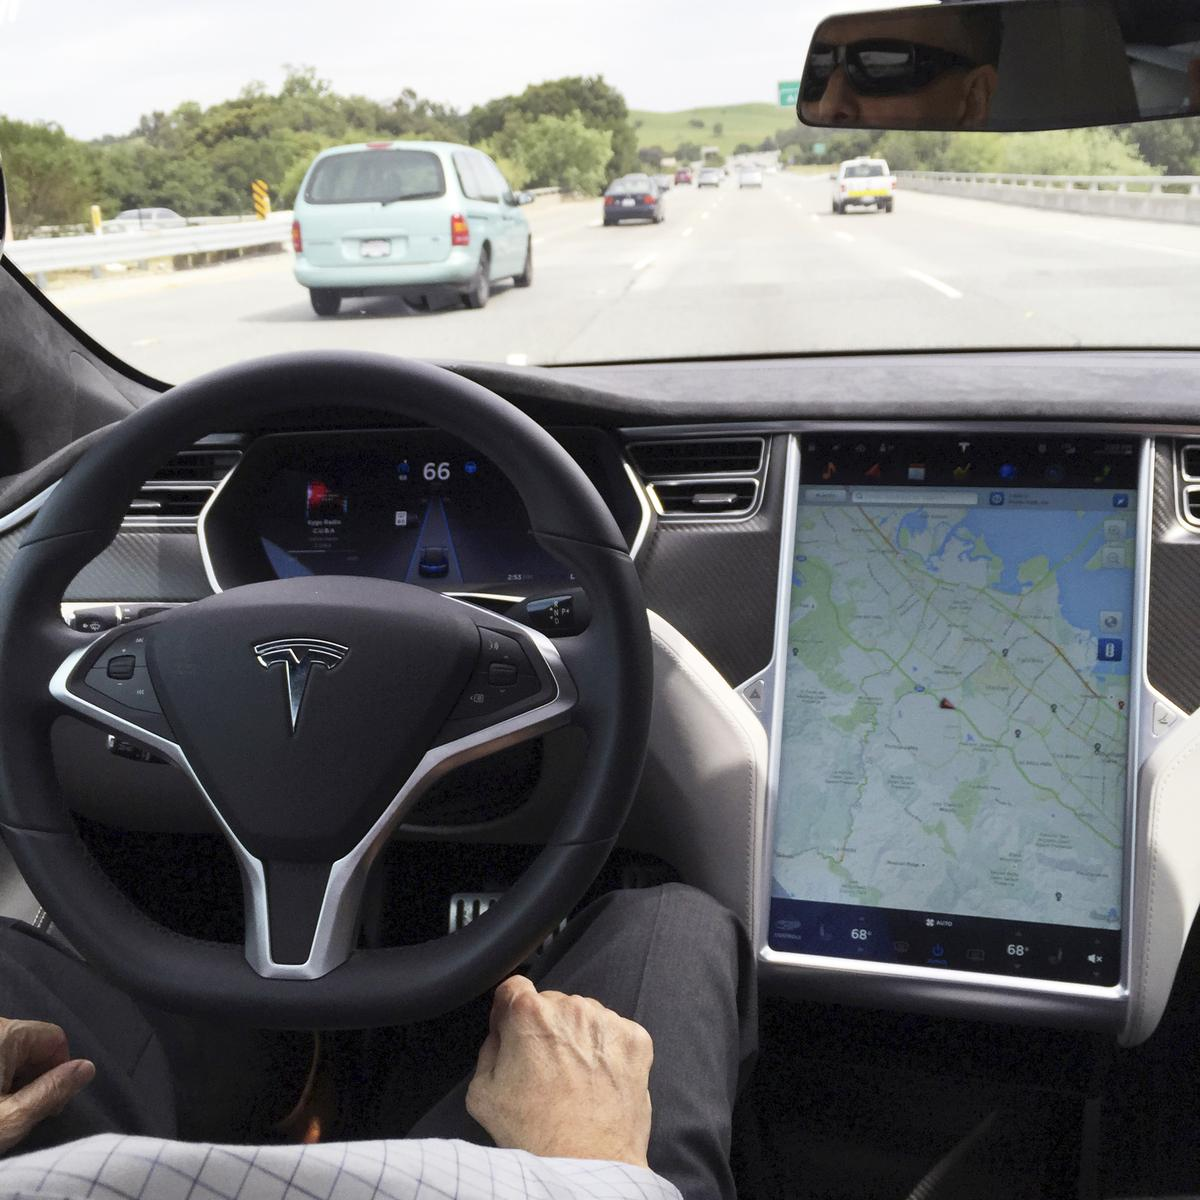 , Tesla and U.S. regulators strongly criticized over role of Autopilot in crash – Source Reuters Tech News, iBSC Technologies - learning management services, LMS, Wordpress, CMS, Moodle, IT, Email, Web Hosting, Cloud Server,Cloud Computing